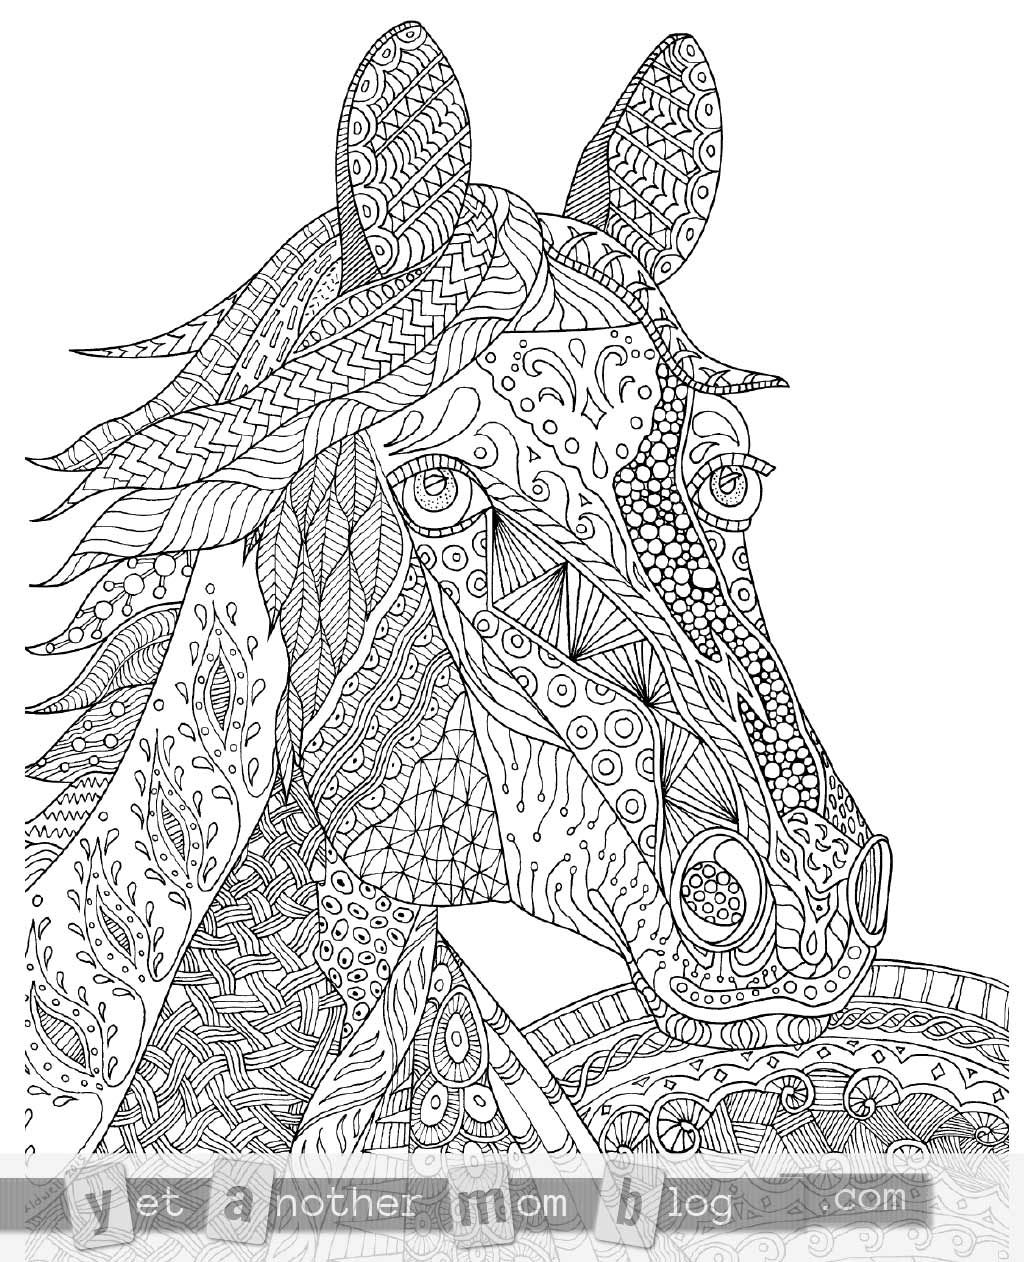 Zentangle Horse Coloring Page For Adults Plus Bonus Easy Horse Horse Coloring Pages Animal Coloring Pages Horse Coloring